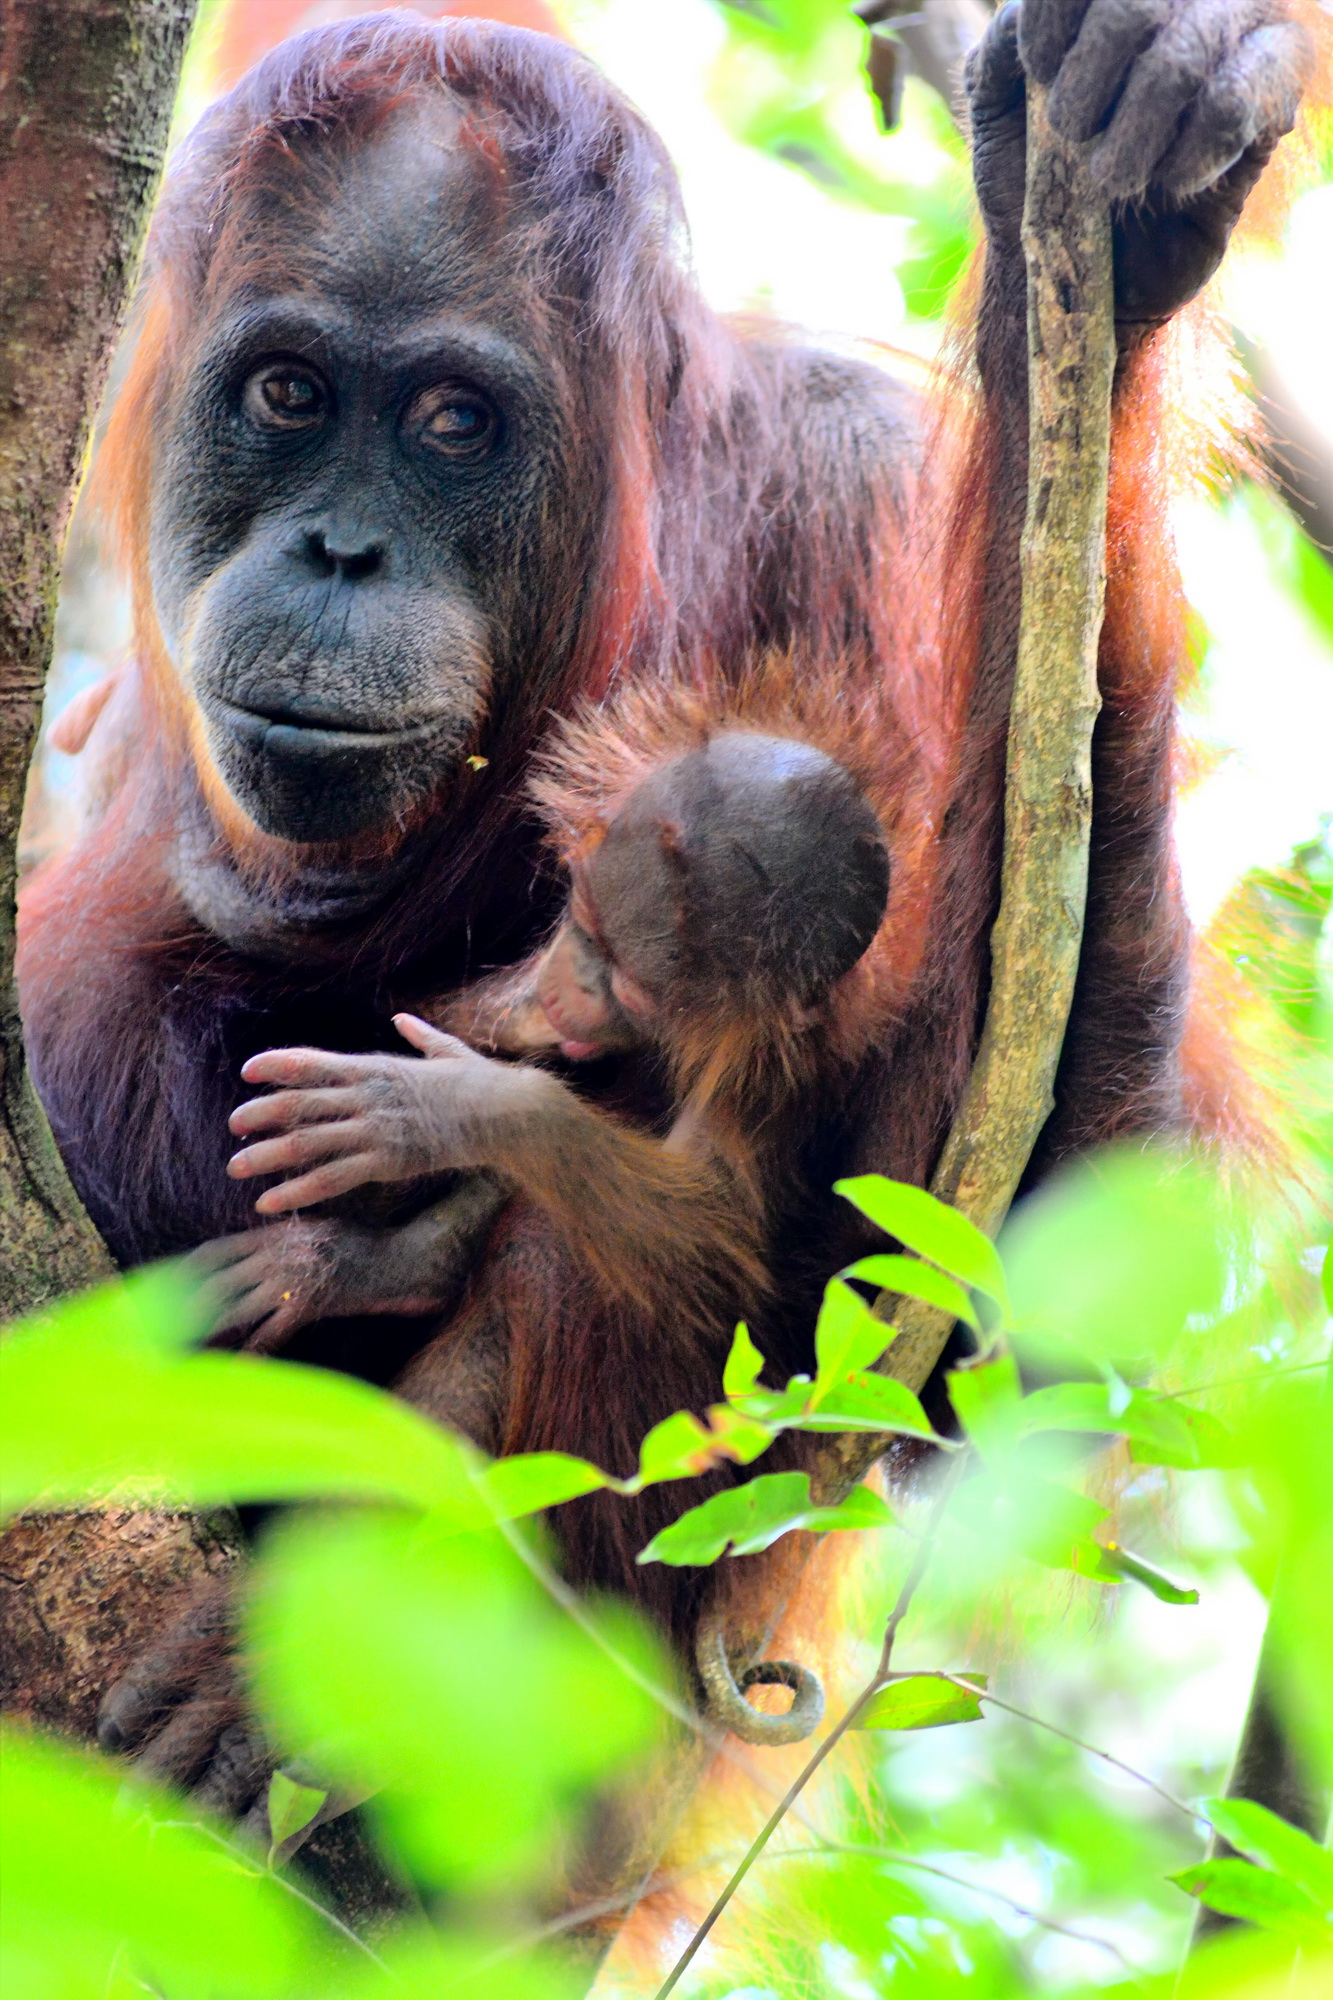 Paula with an infant in 2015. Image© Orangutan Foundation.